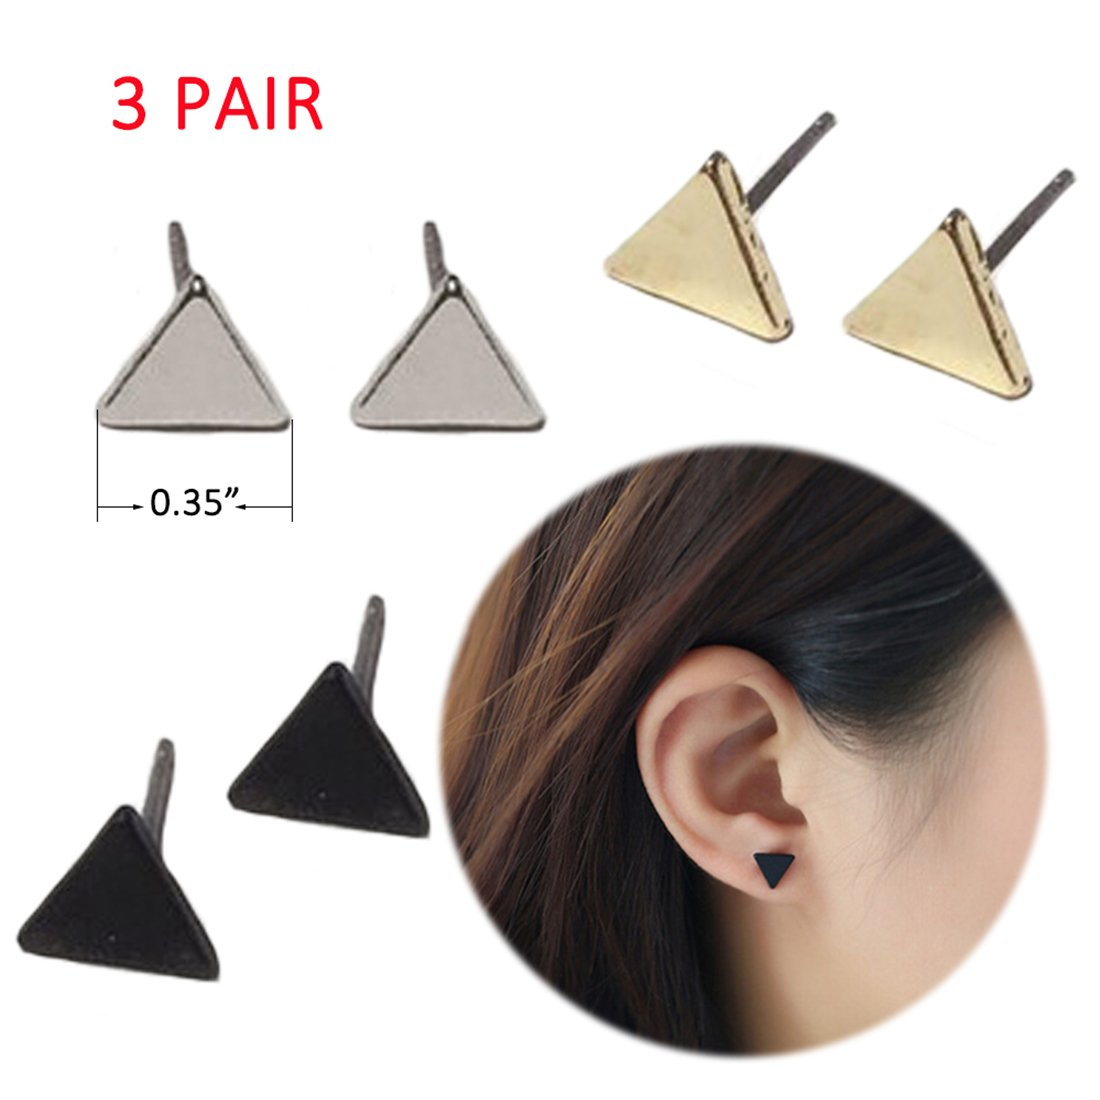 3 Pair Ear Crawler Earrings Climbers Studs Ear Cuff Pin Vine Wrap Women Bar Line Simple Clip On Jewelry Chic Moon